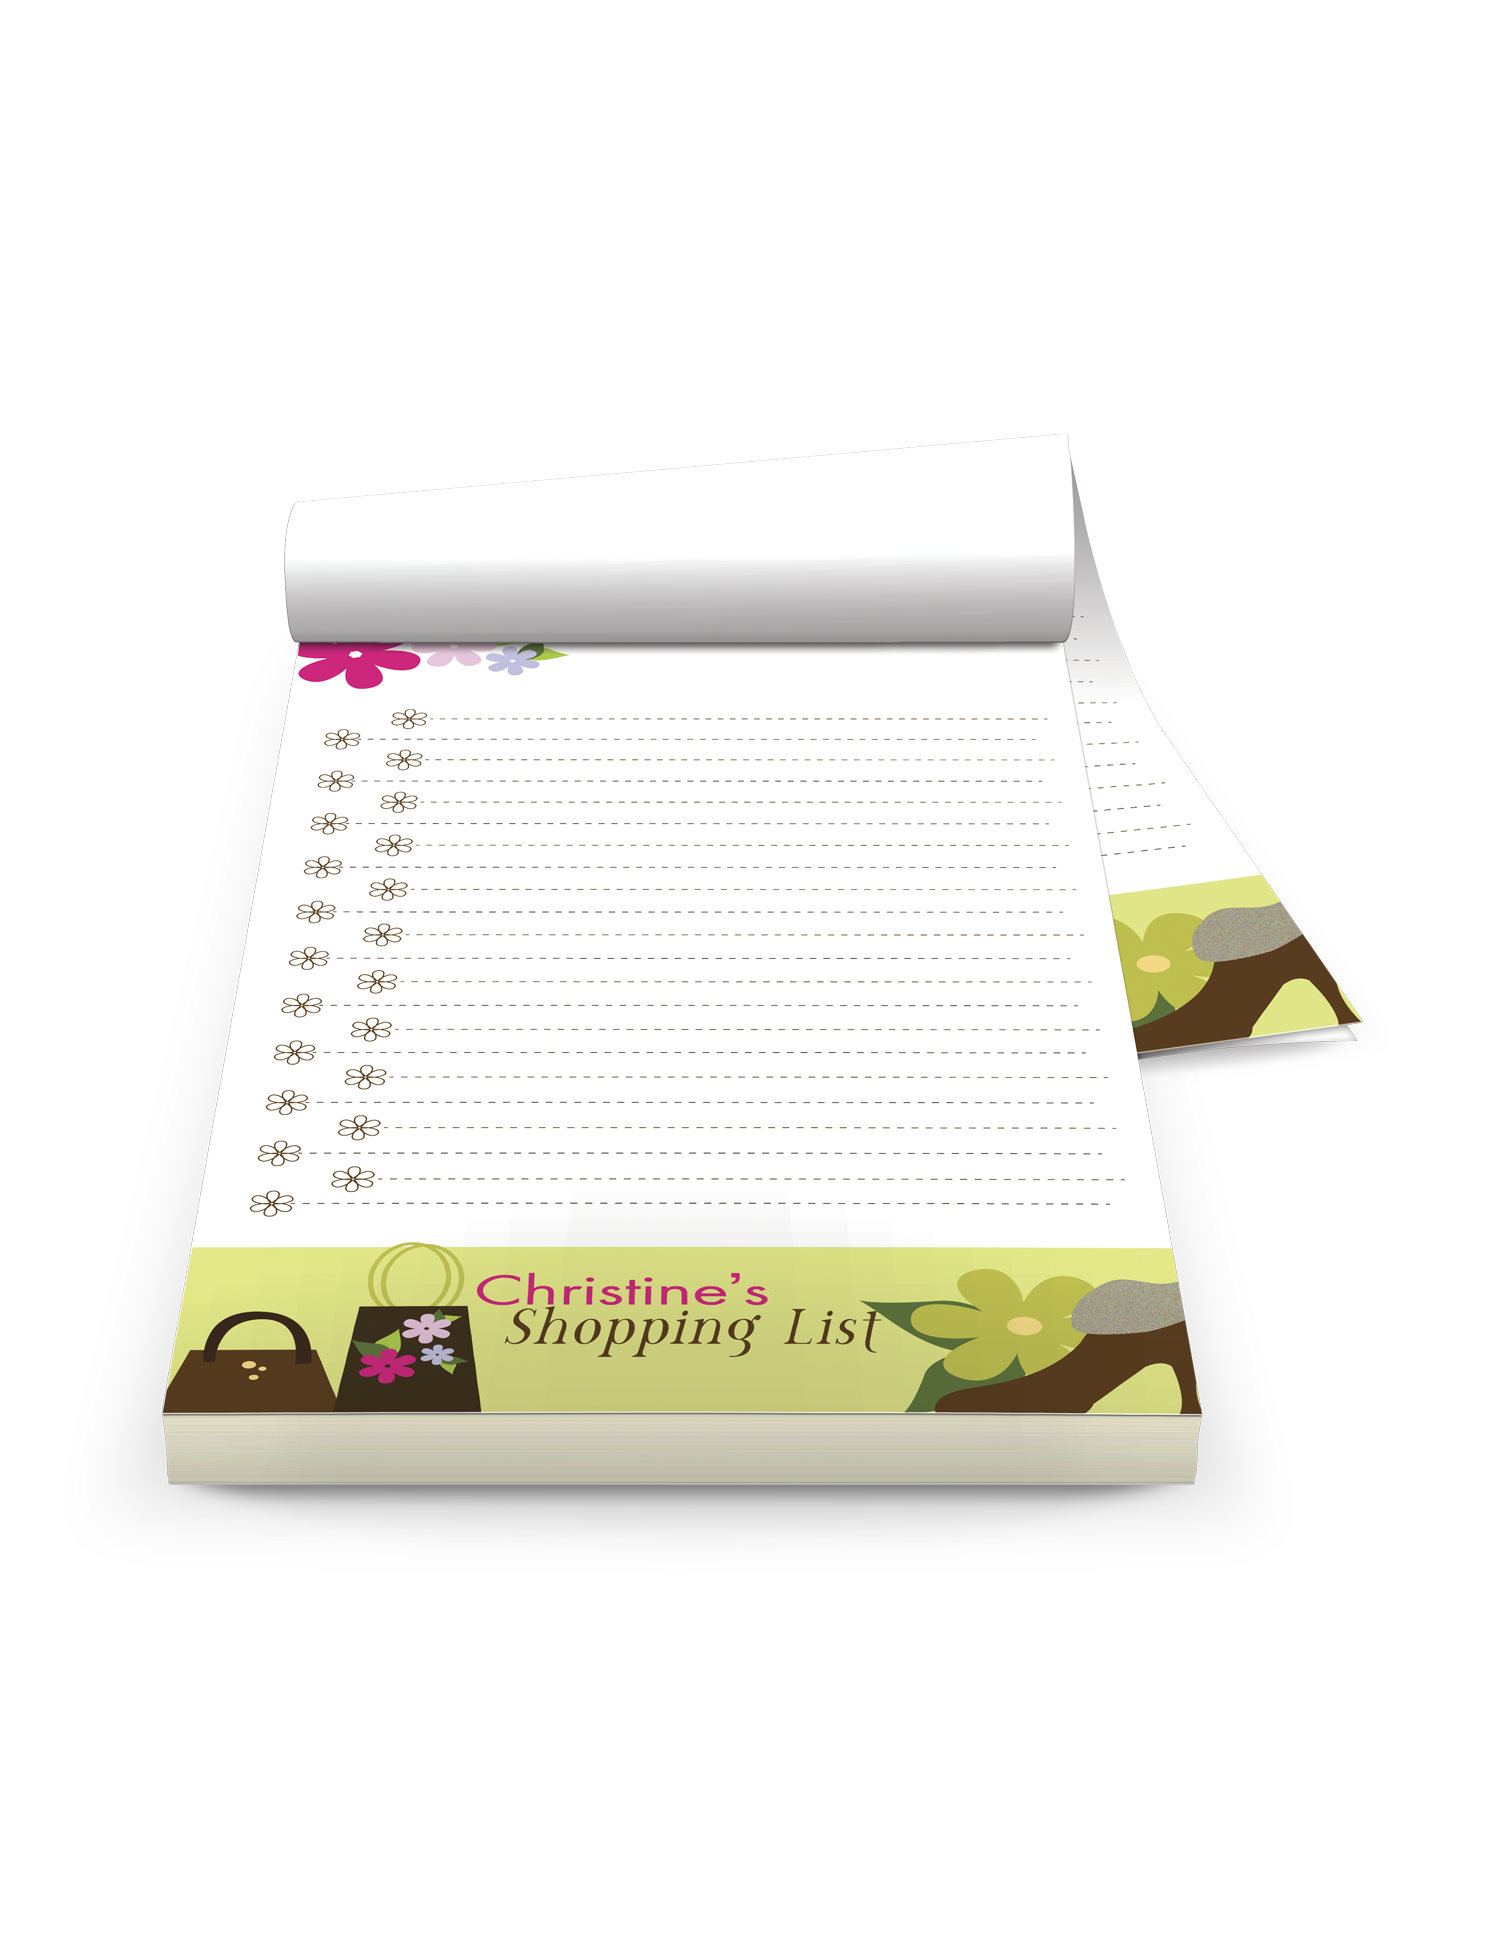 Branded Notepad Printing - Full Color Printing Services - Roseville Printing California